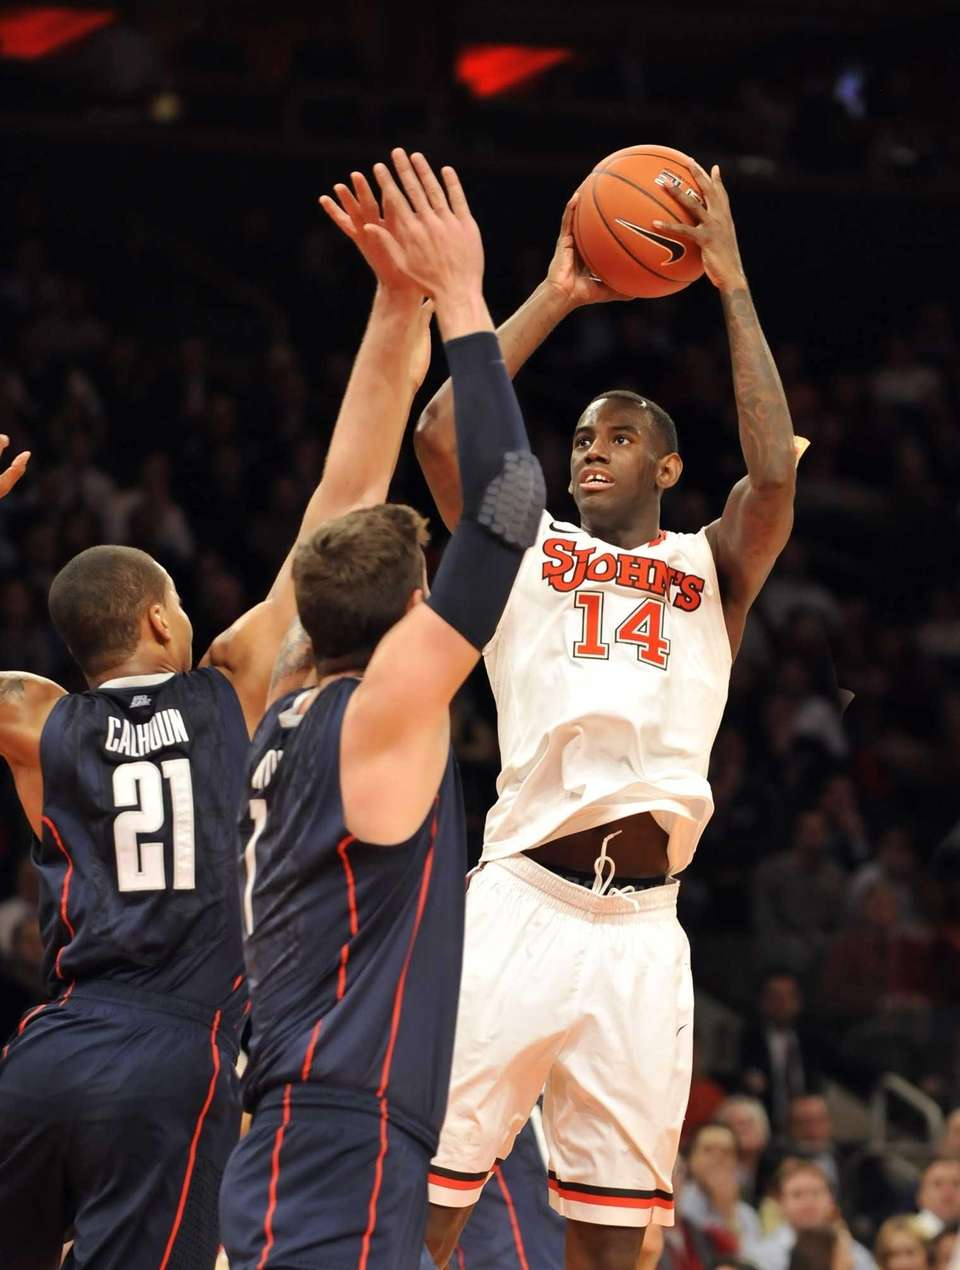 JaKarr Sampson of St. John's shoots over two